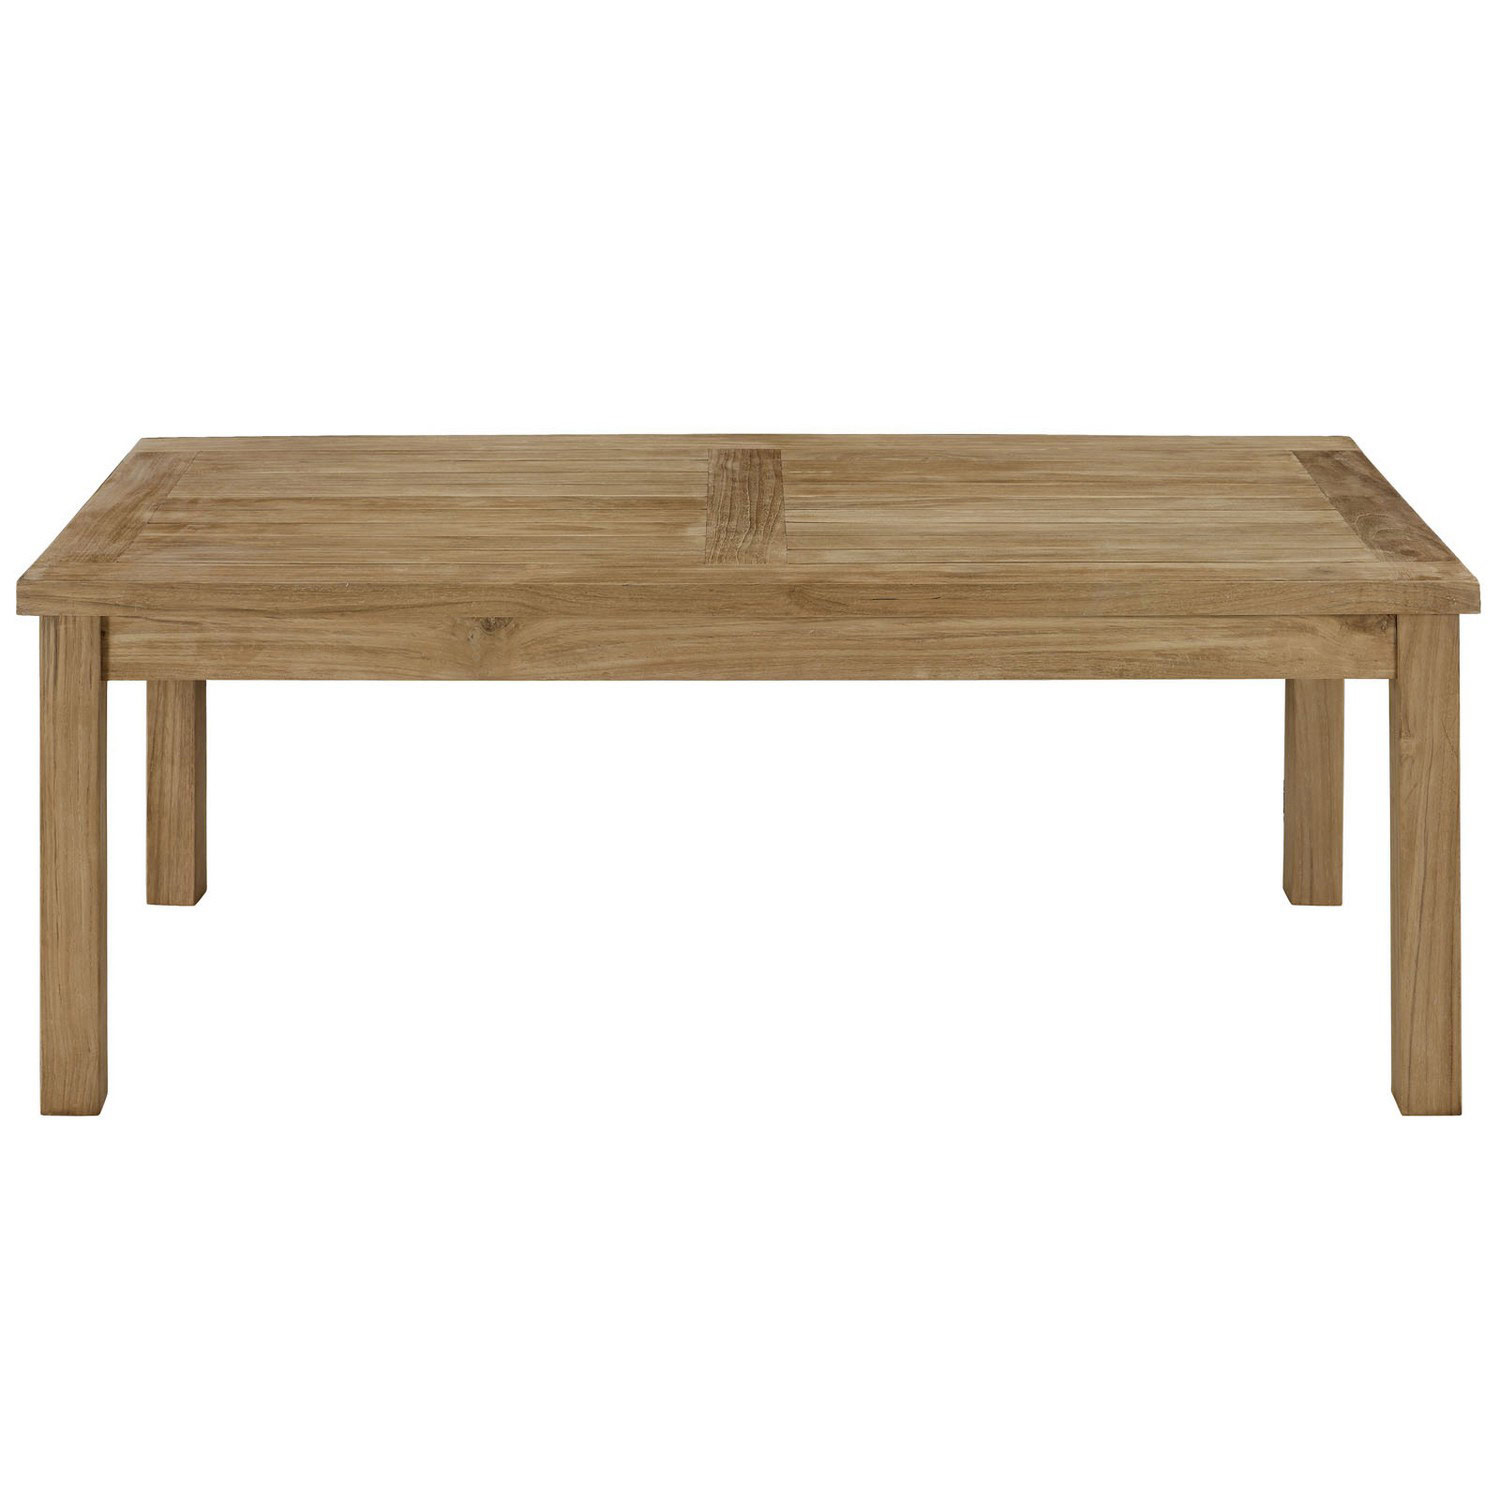 Modway Marina Outdoor Patio Teak Rectangle Coffee Table - Natural